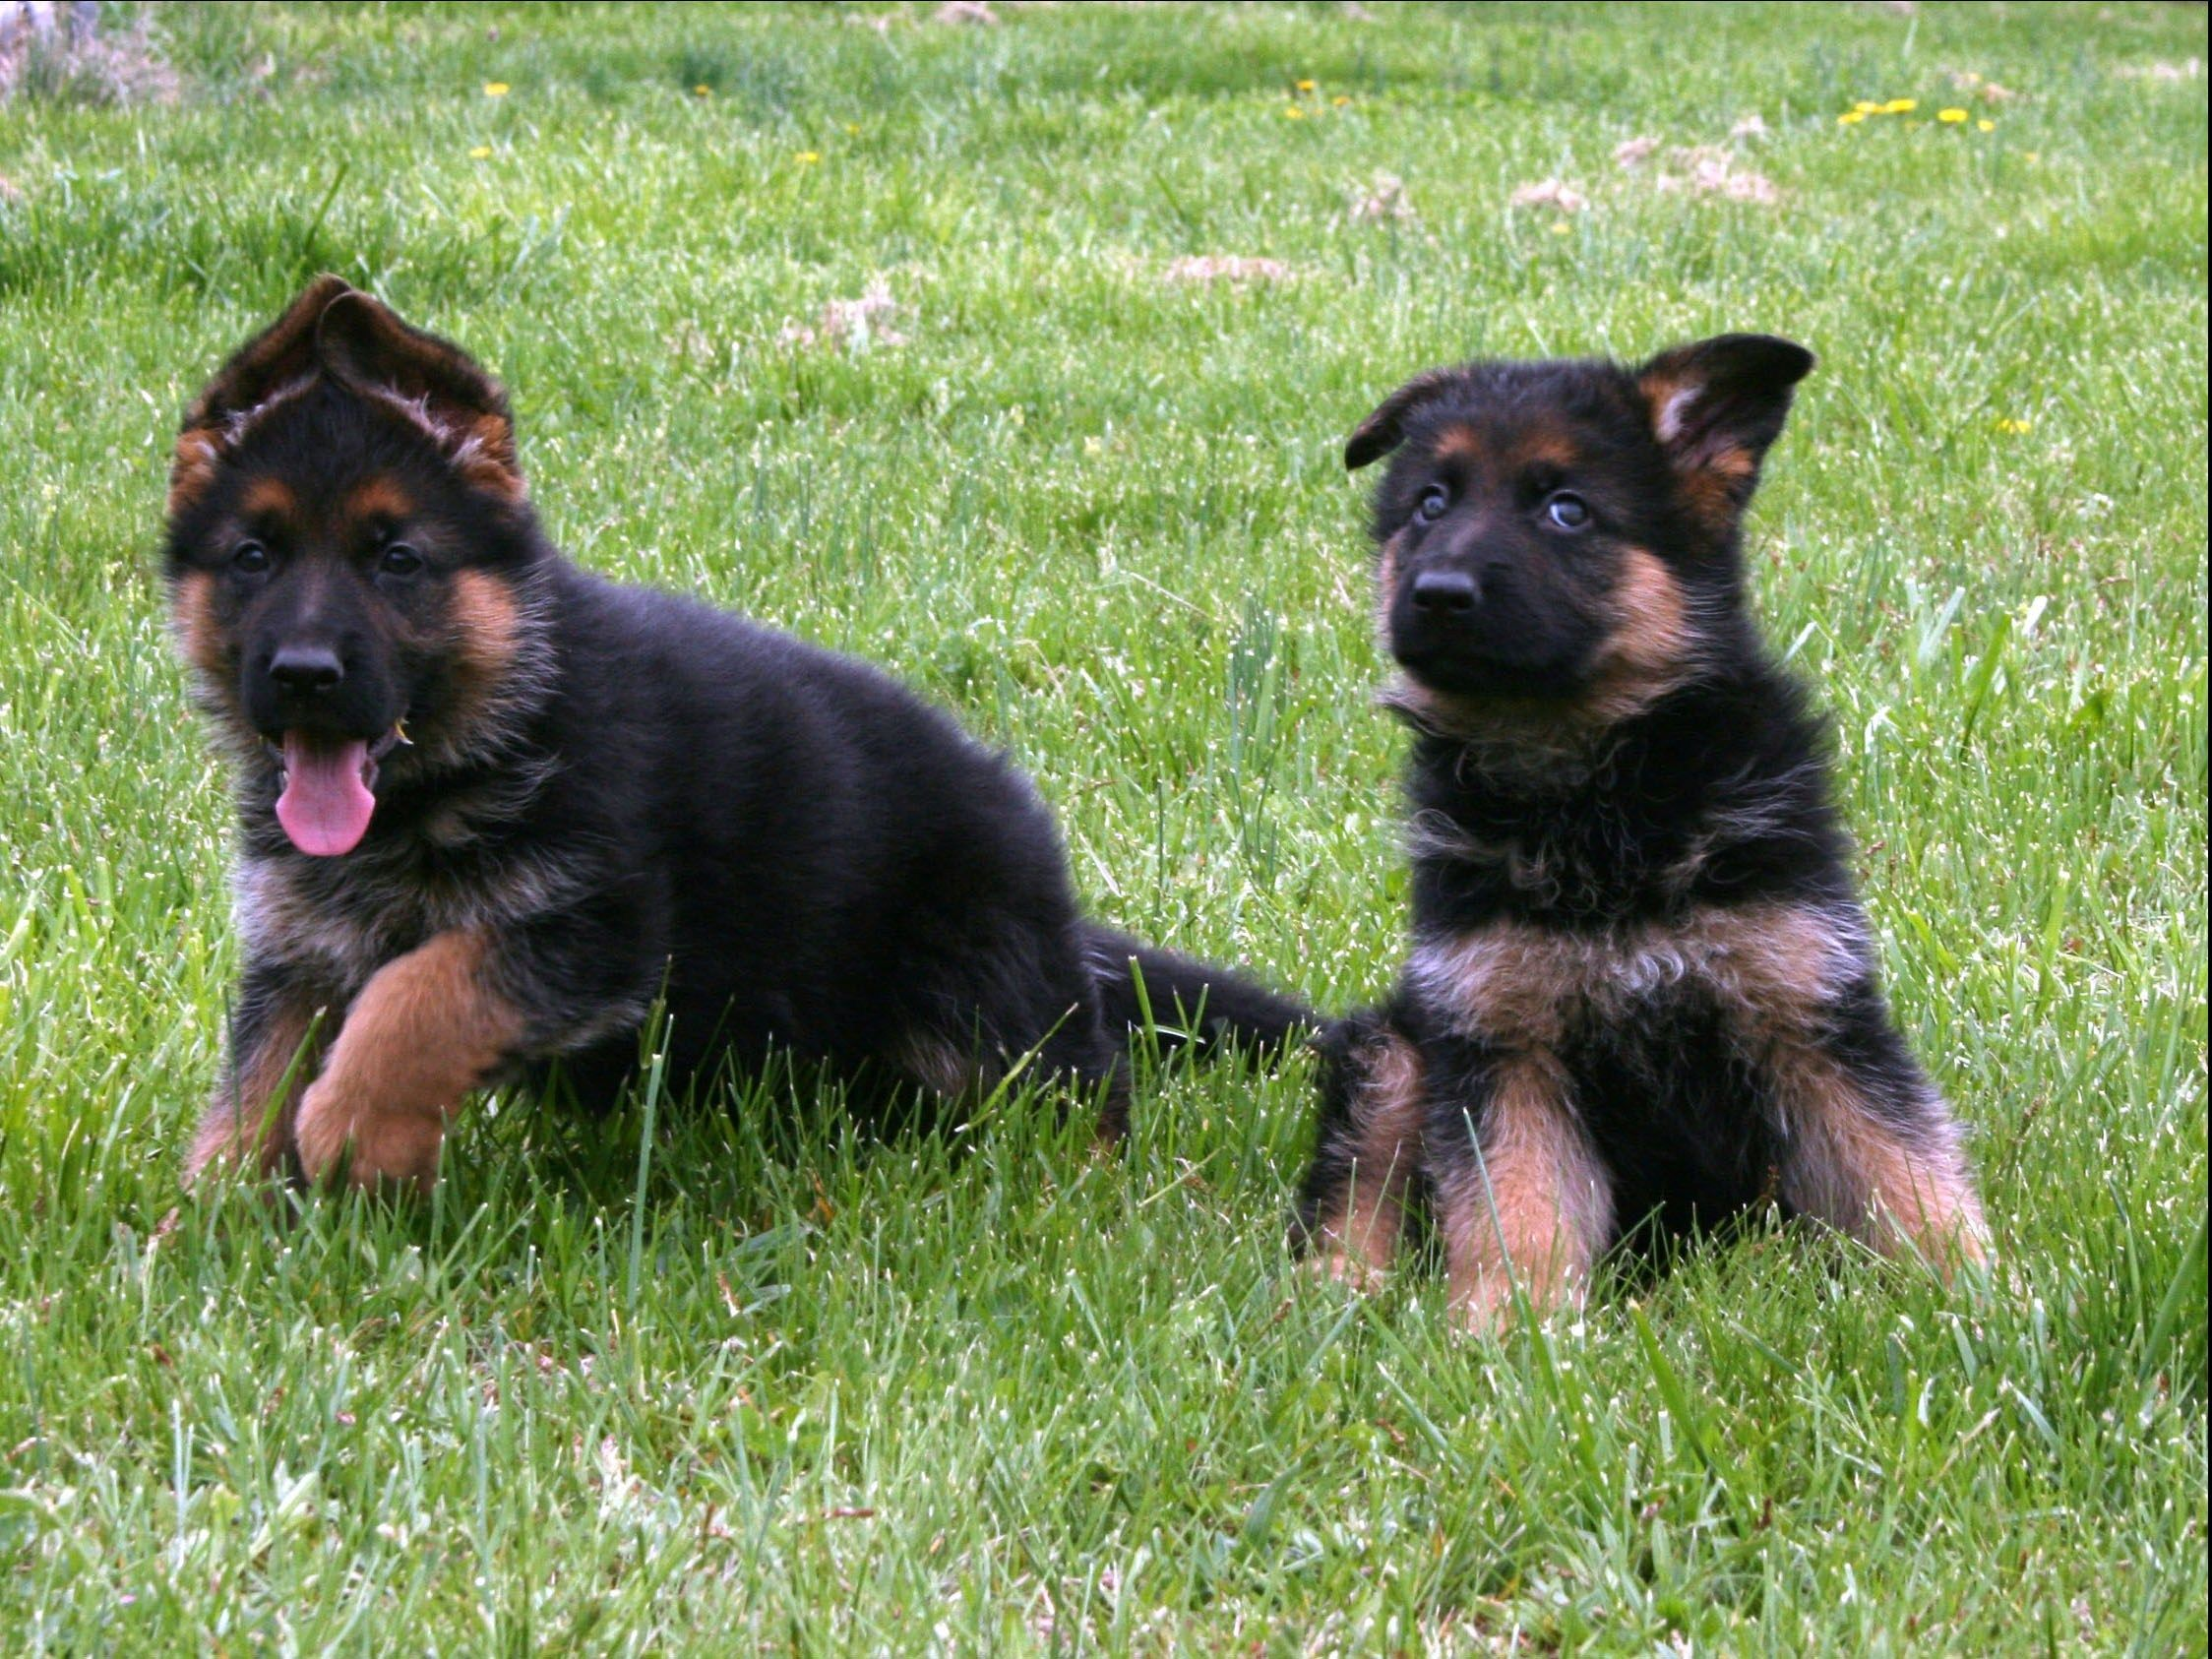 Trained German Shepherd Dogs Have A Significantly Higher Value